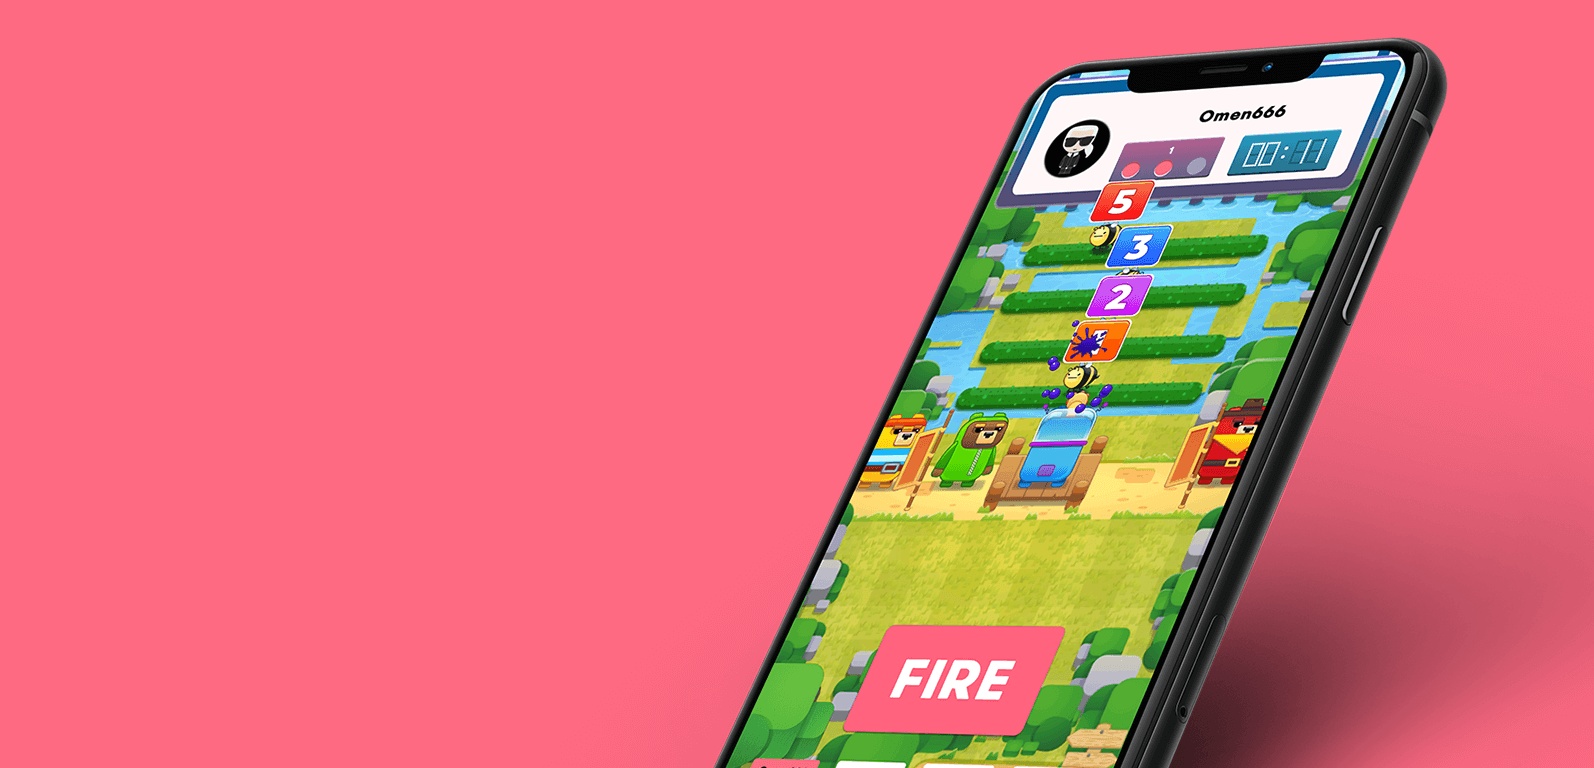 Outsourcing iOS & Android mobile game development services using Unity